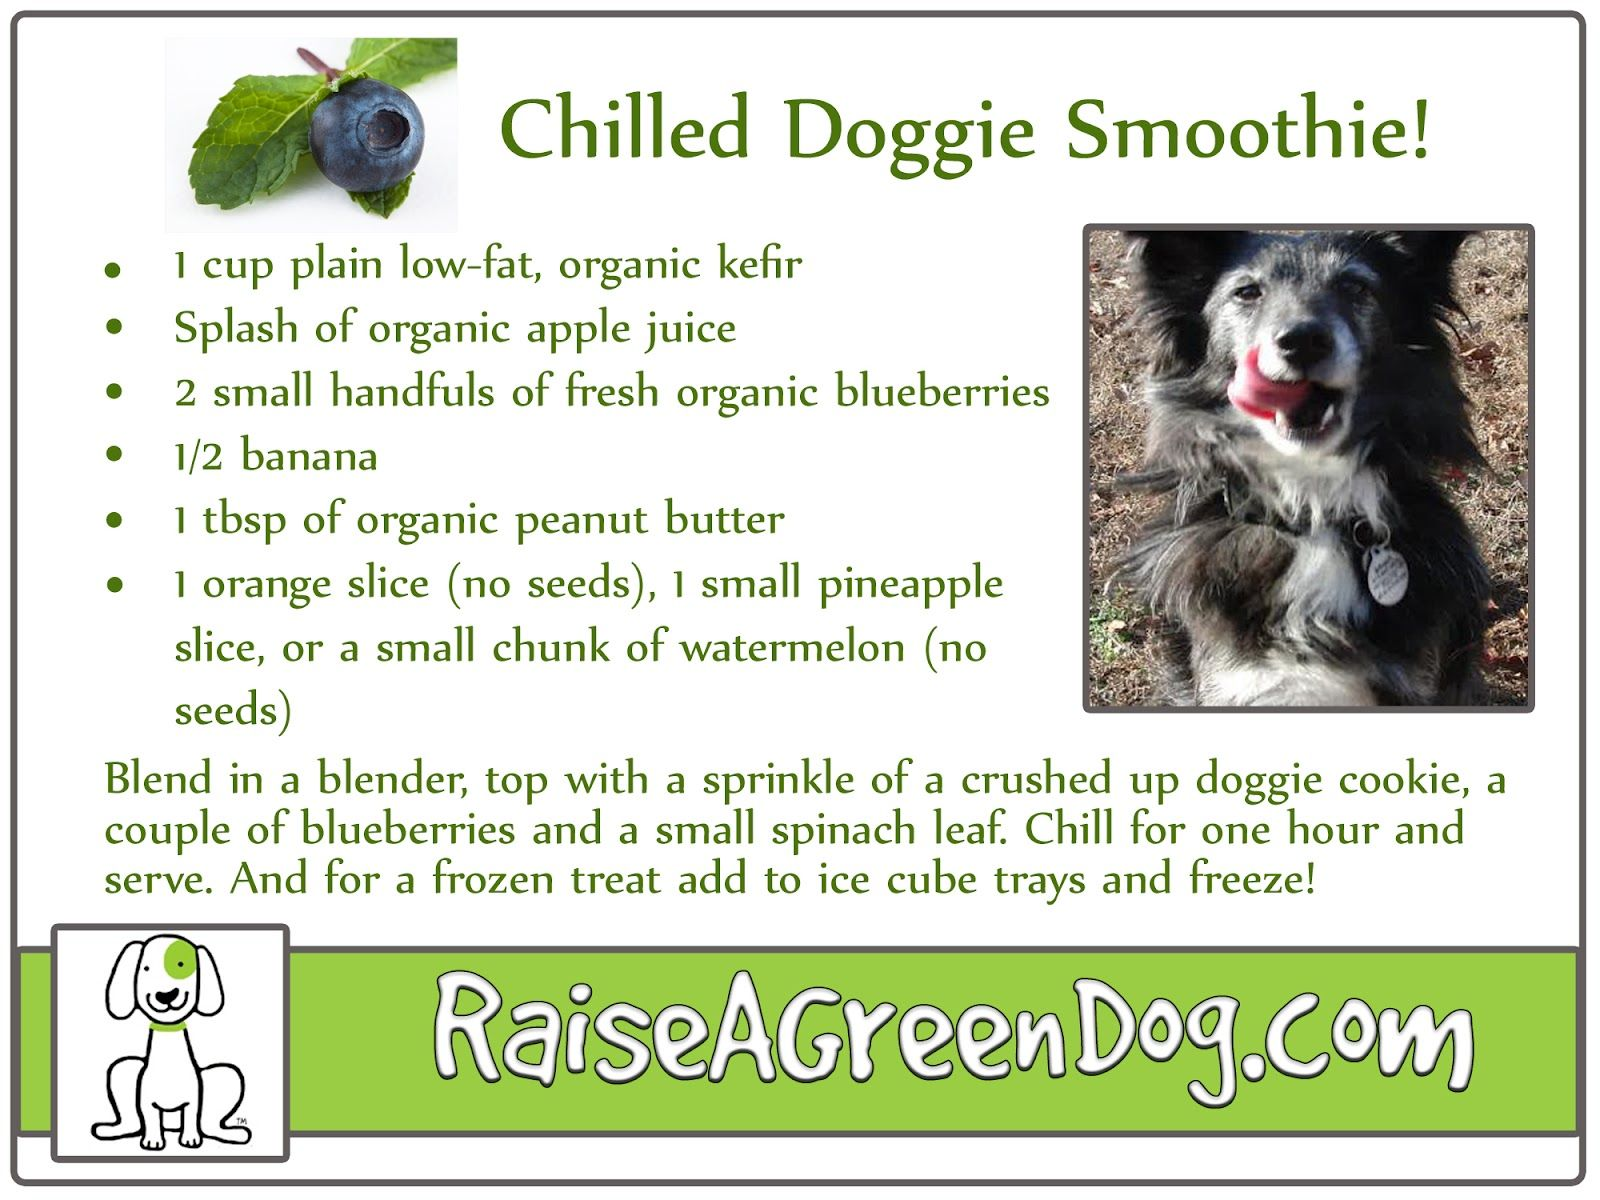 Chilled Doggie Smoothies a yummy cool healthy treat for your